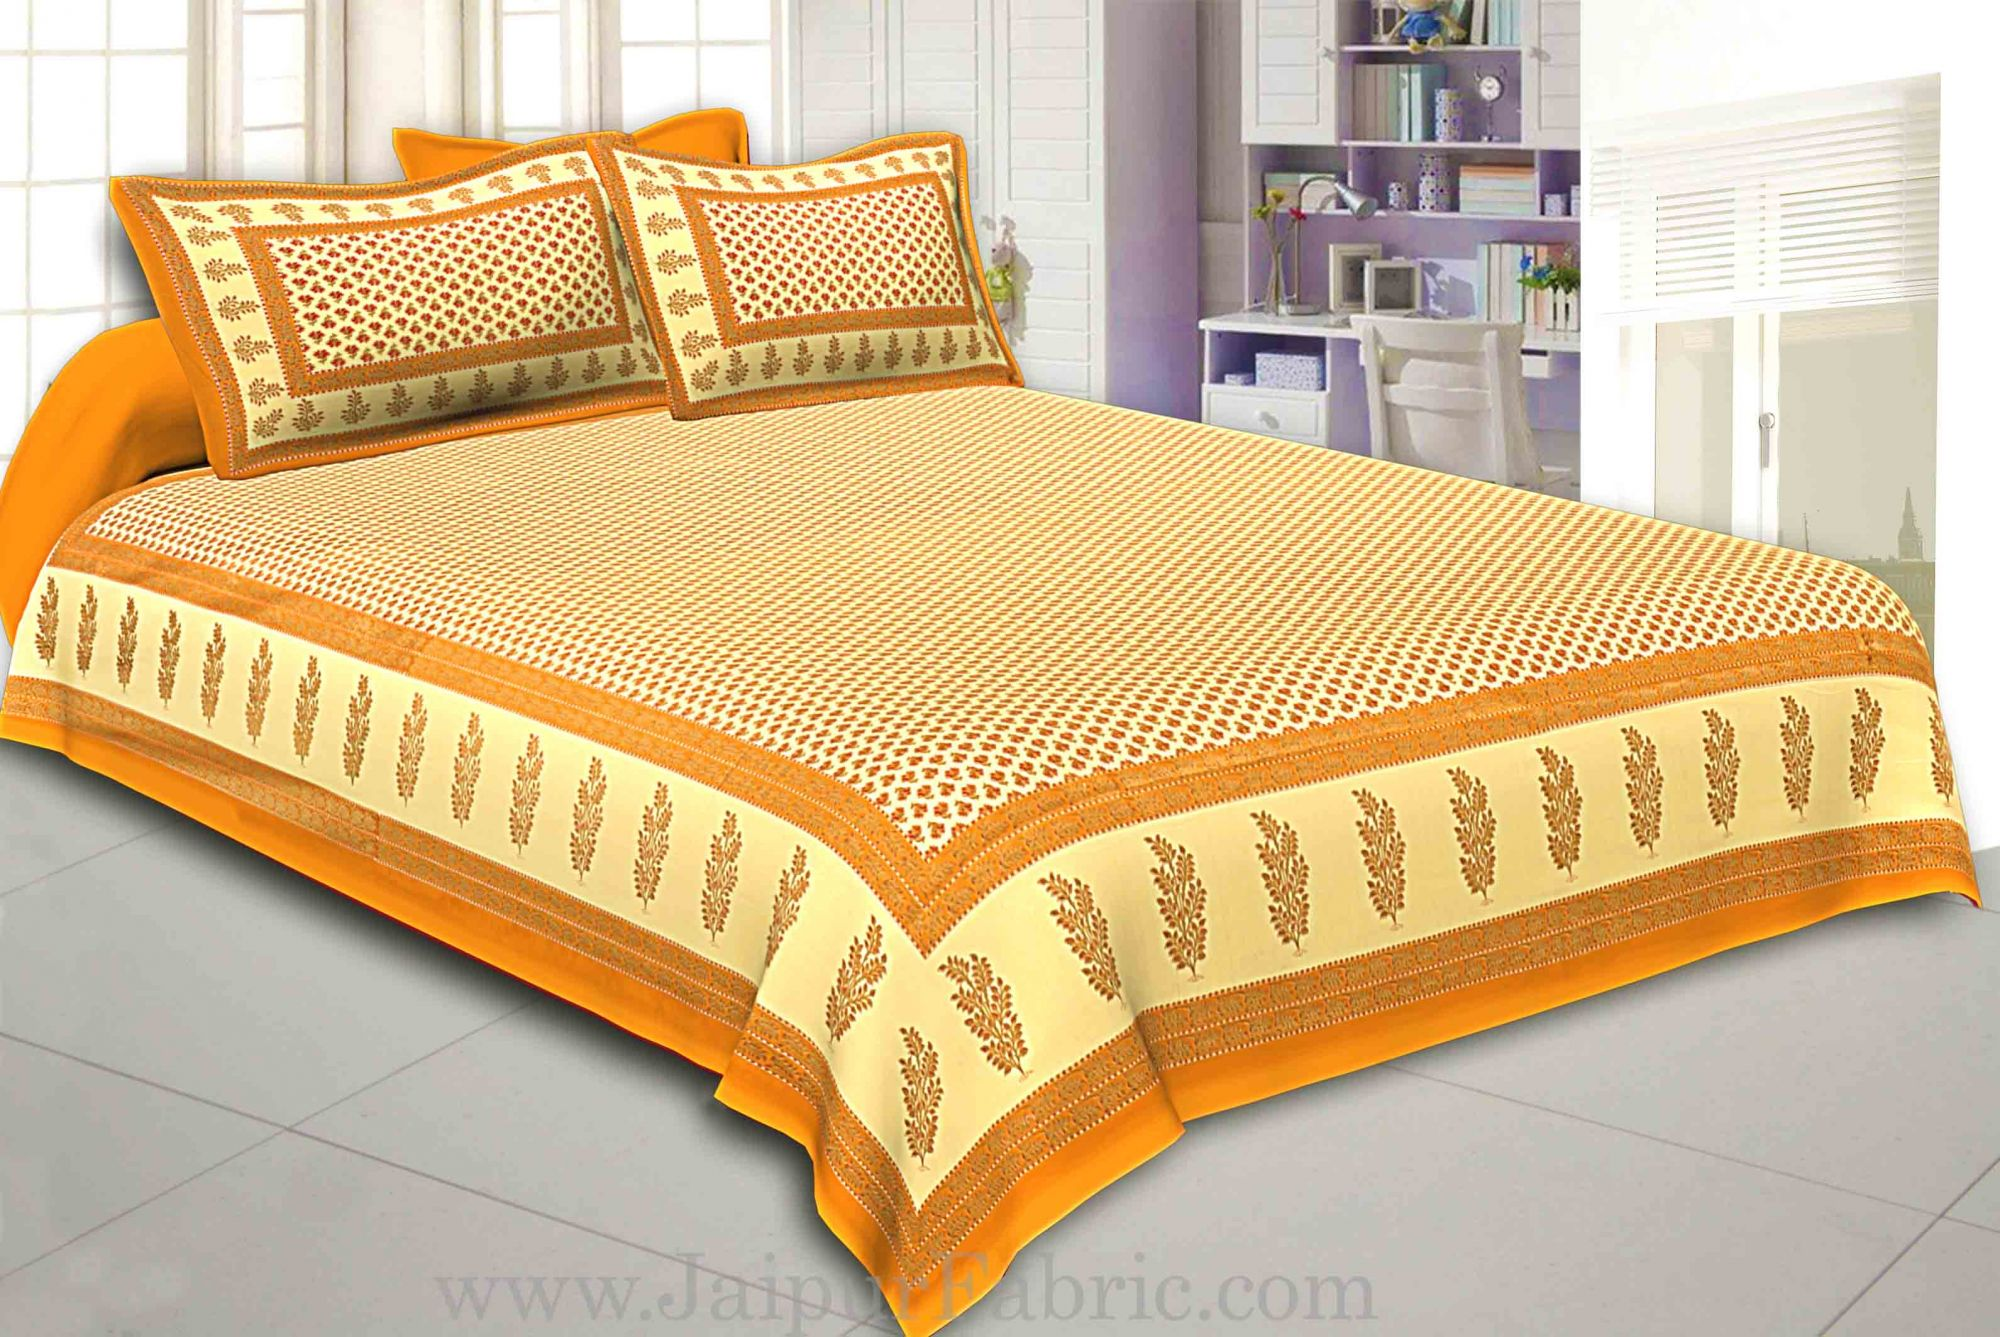 Orange Border Cream Base With booti Pattern With Golden Print Super Fine Cotton Double Bed Sheet